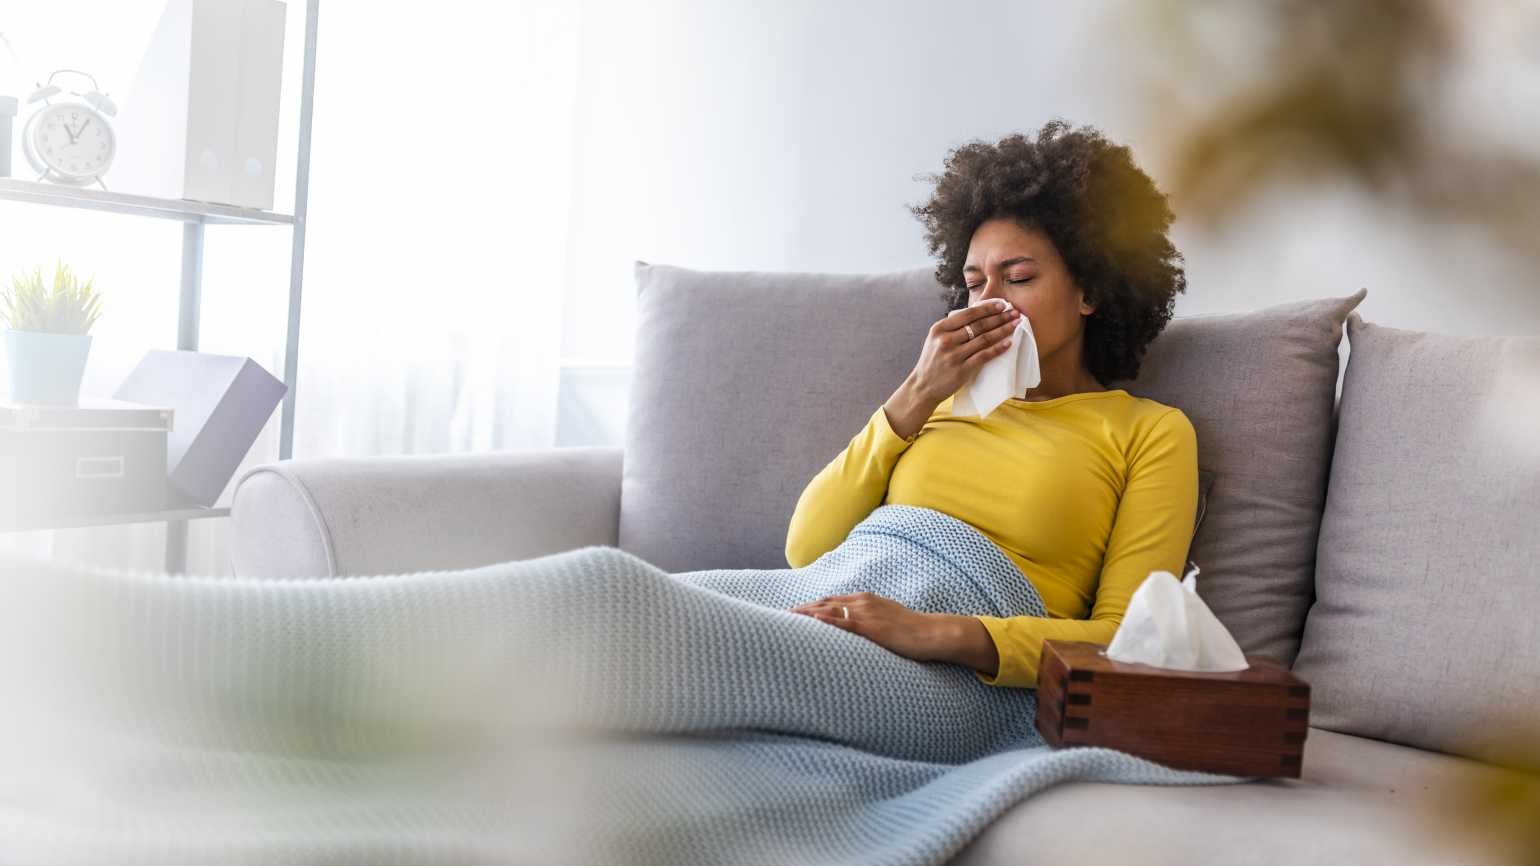 Women with tissue sitting on couch